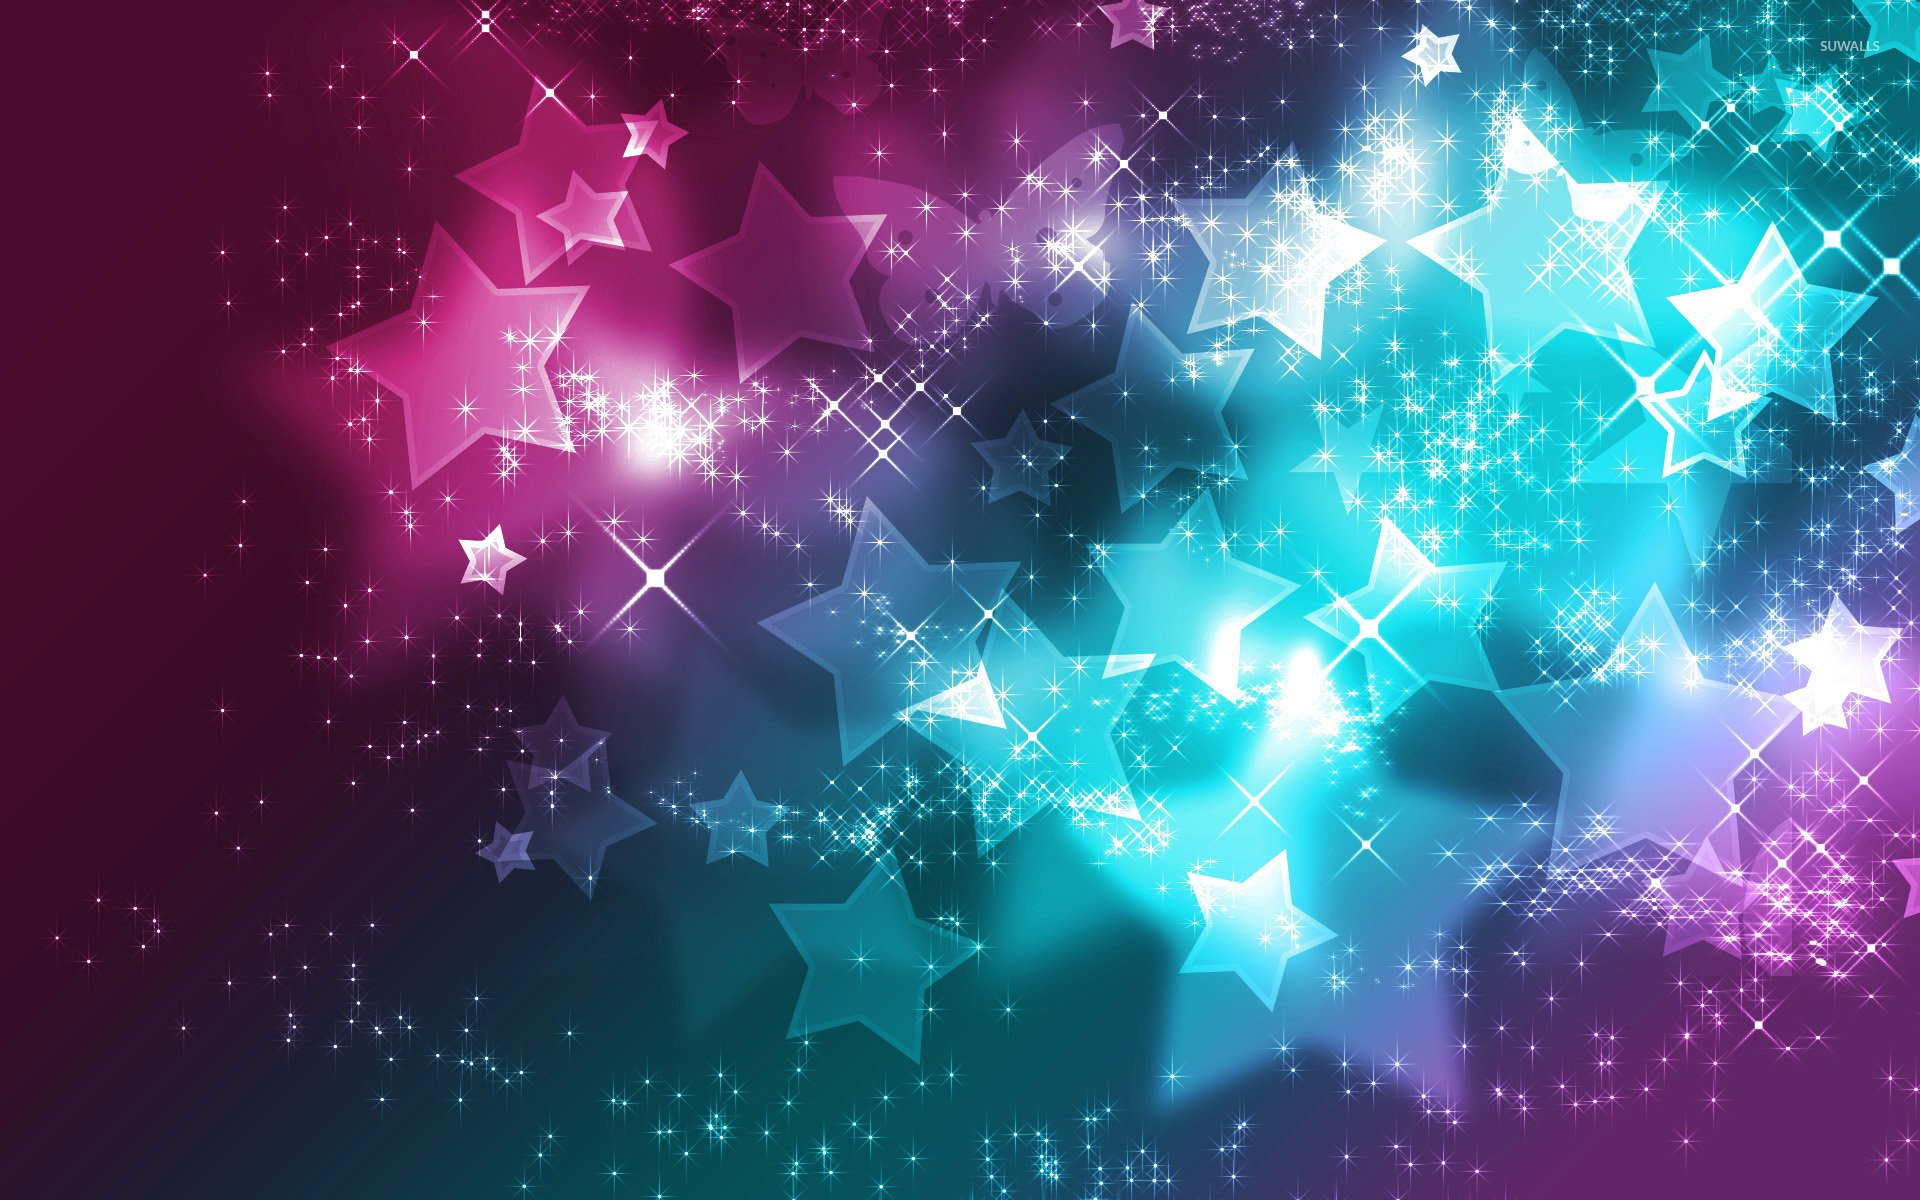 colorful star wallpaper wallpapersafari